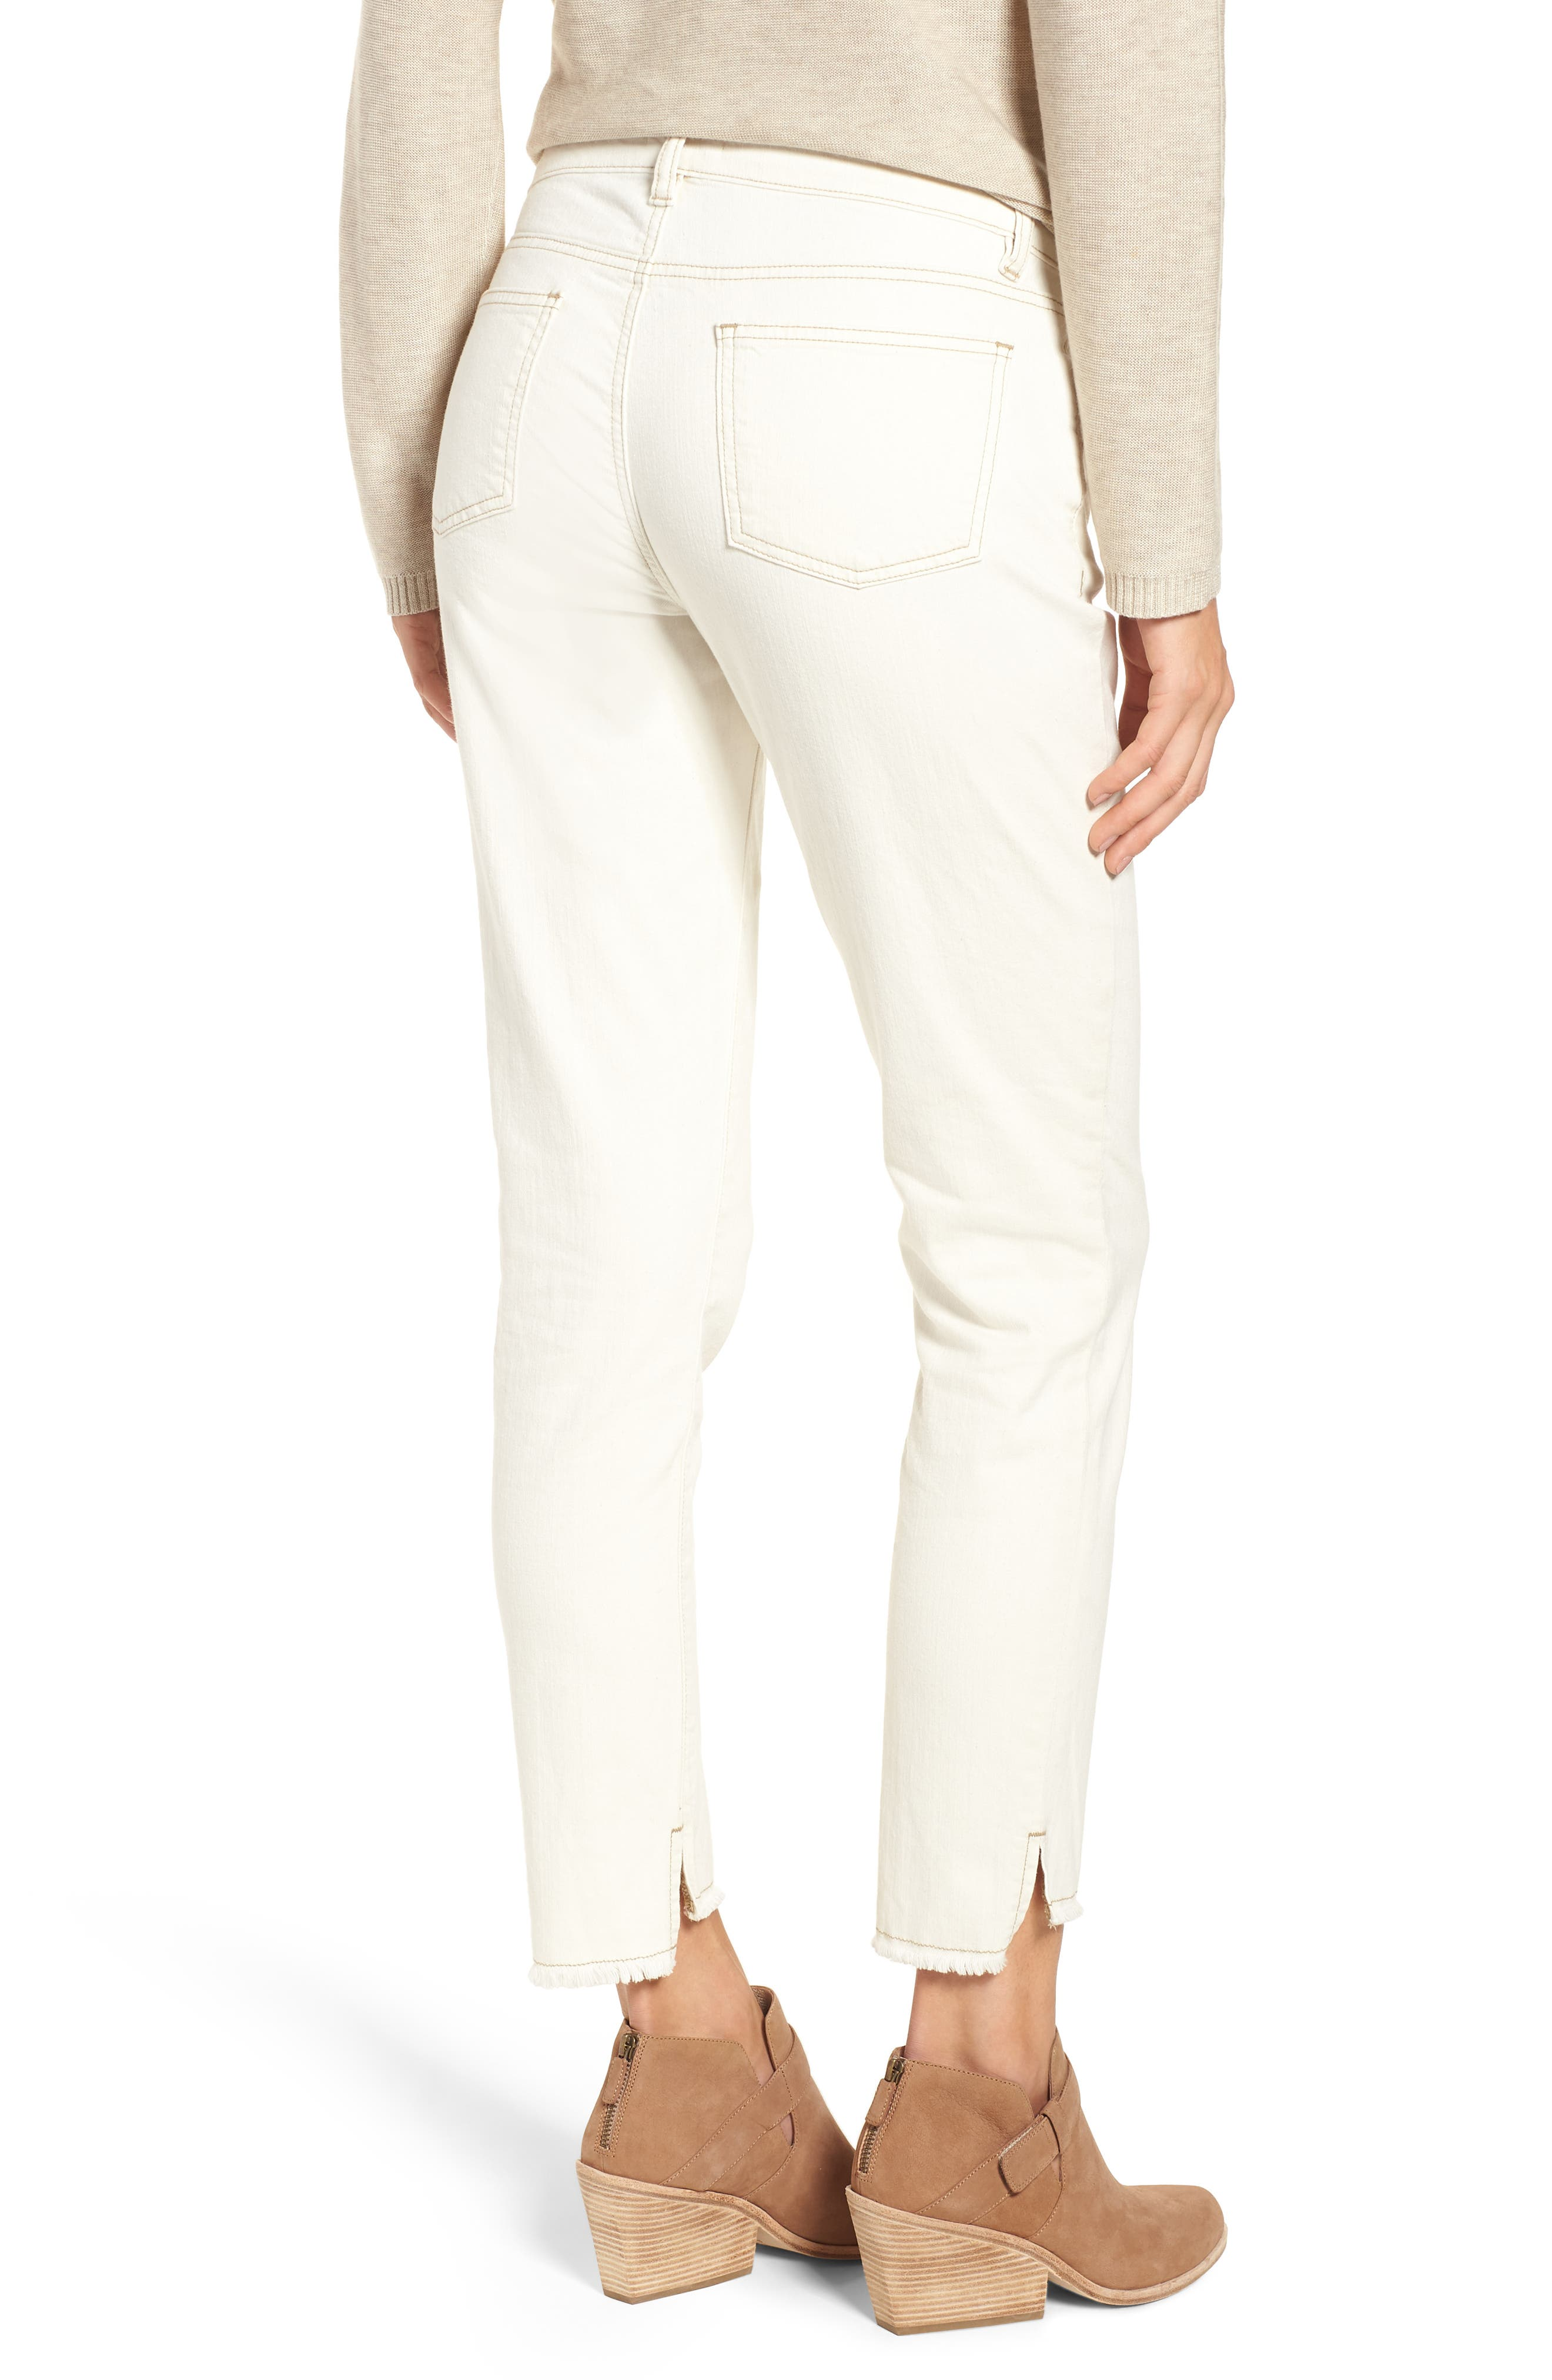 Stretch Organic Cotton Slim Ankle Jeans,                             Alternate thumbnail 2, color,                             Undyed Natural